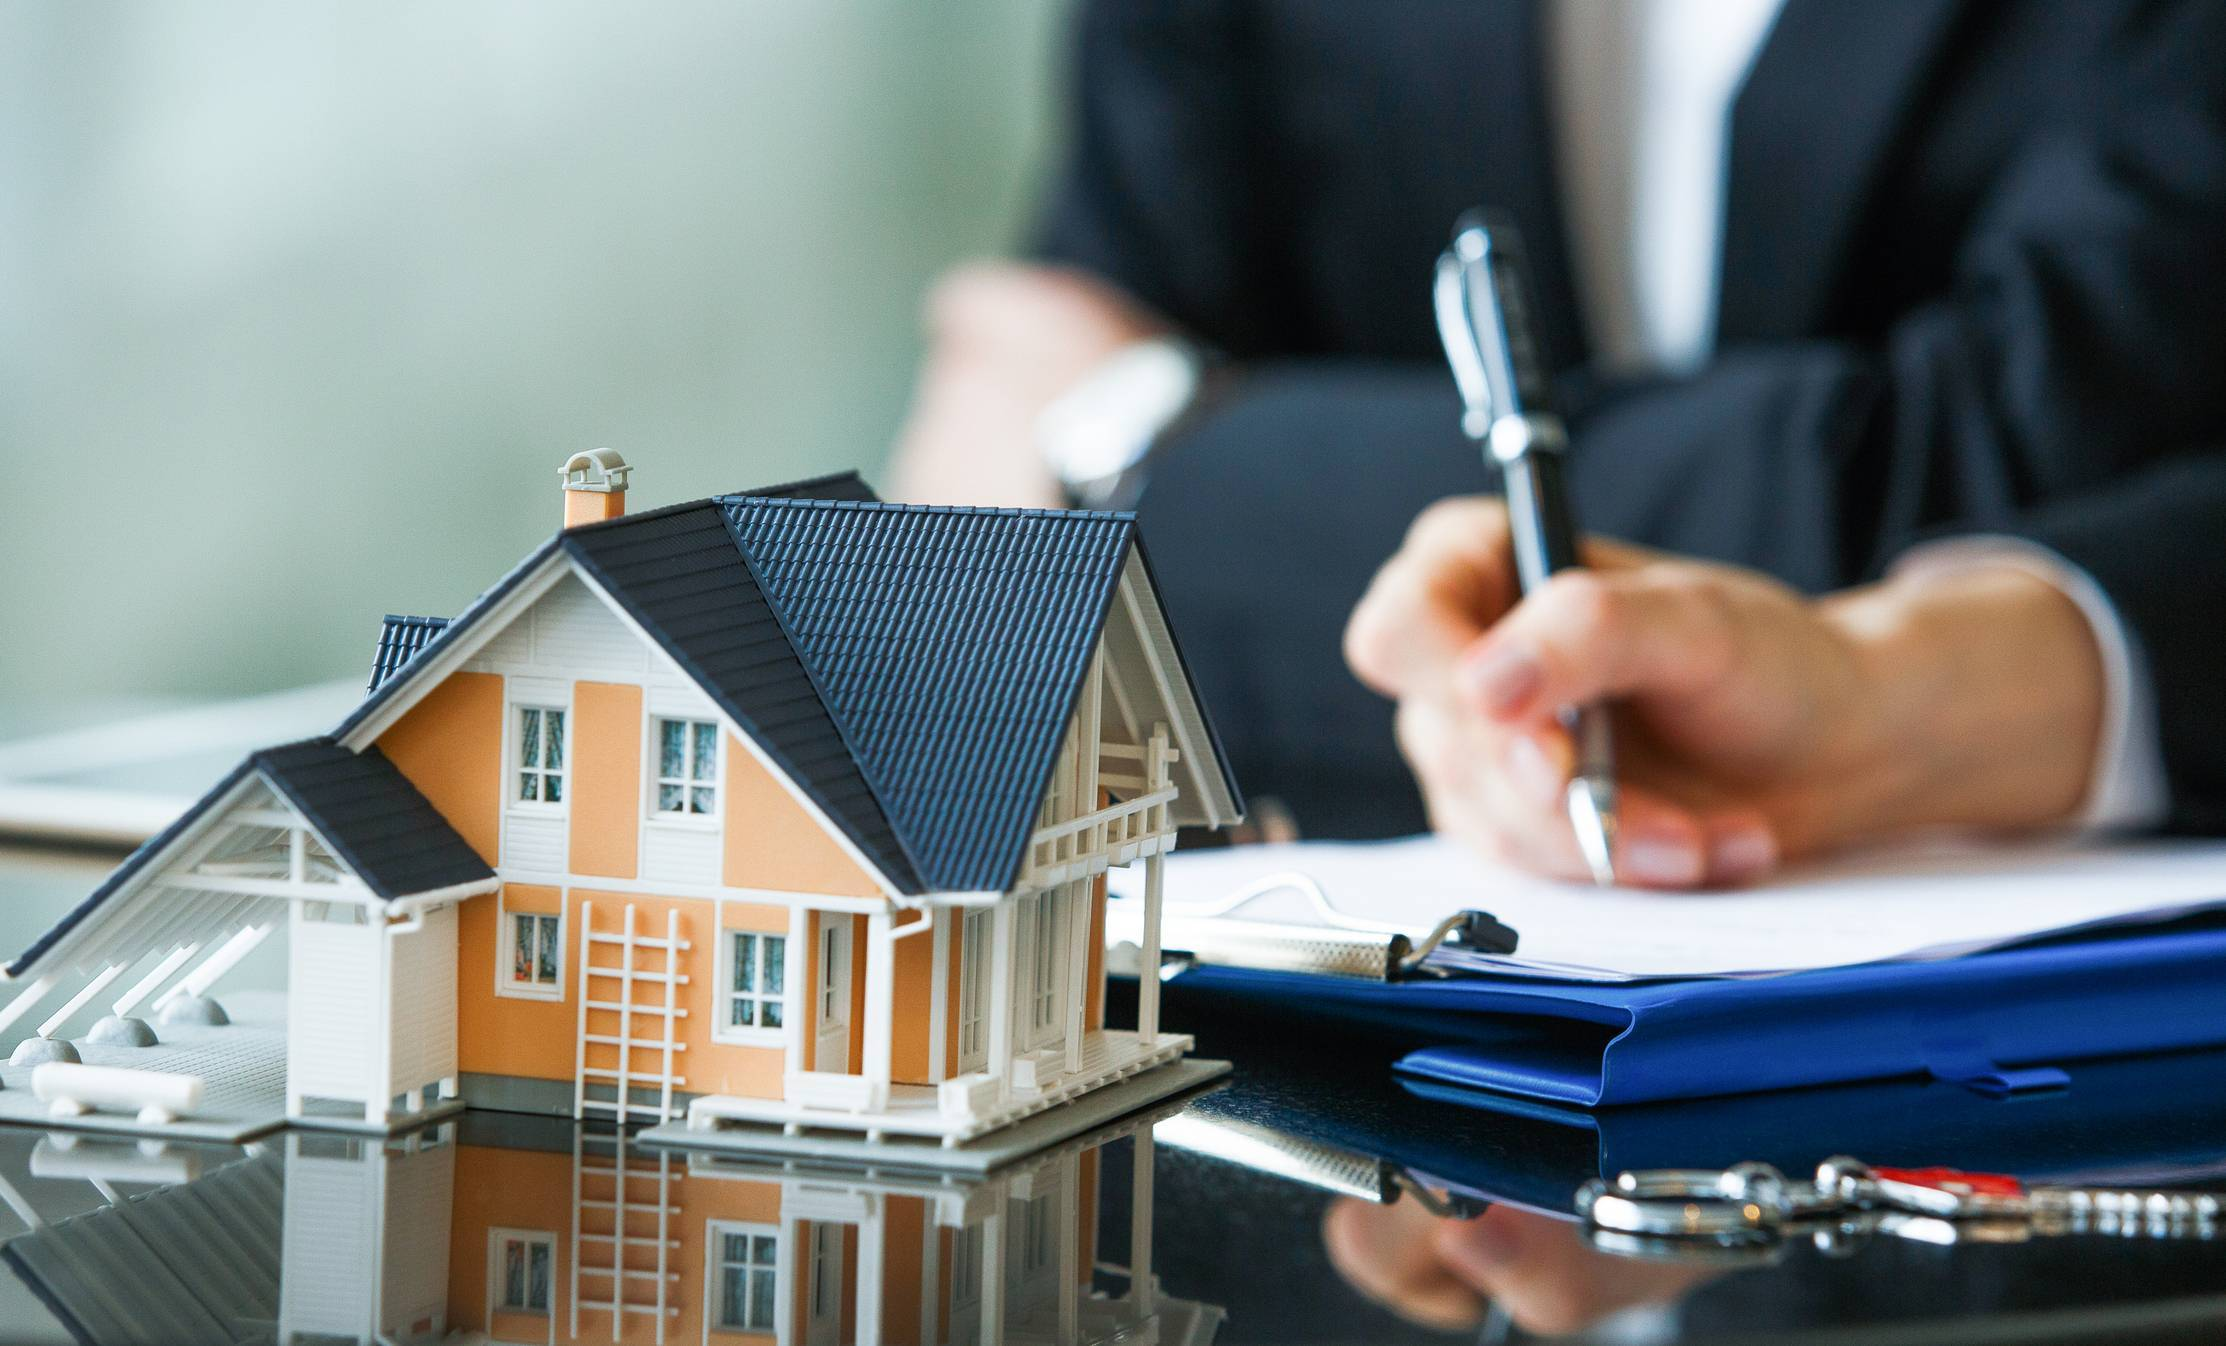 agence immobilière achat immobilier